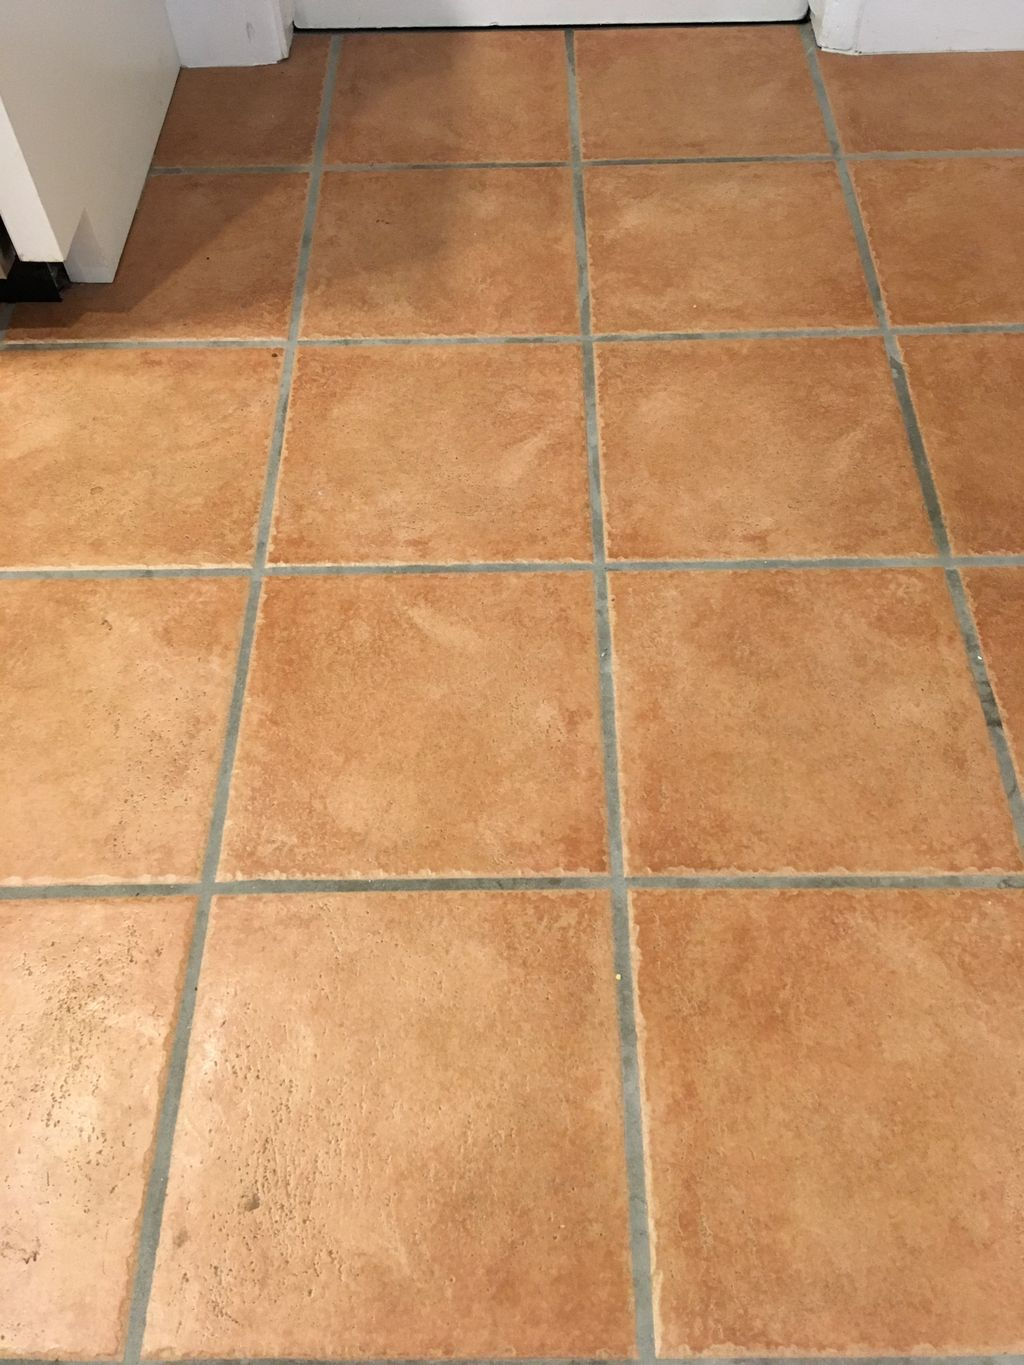 Clean Tile and grout and color seal grout lines